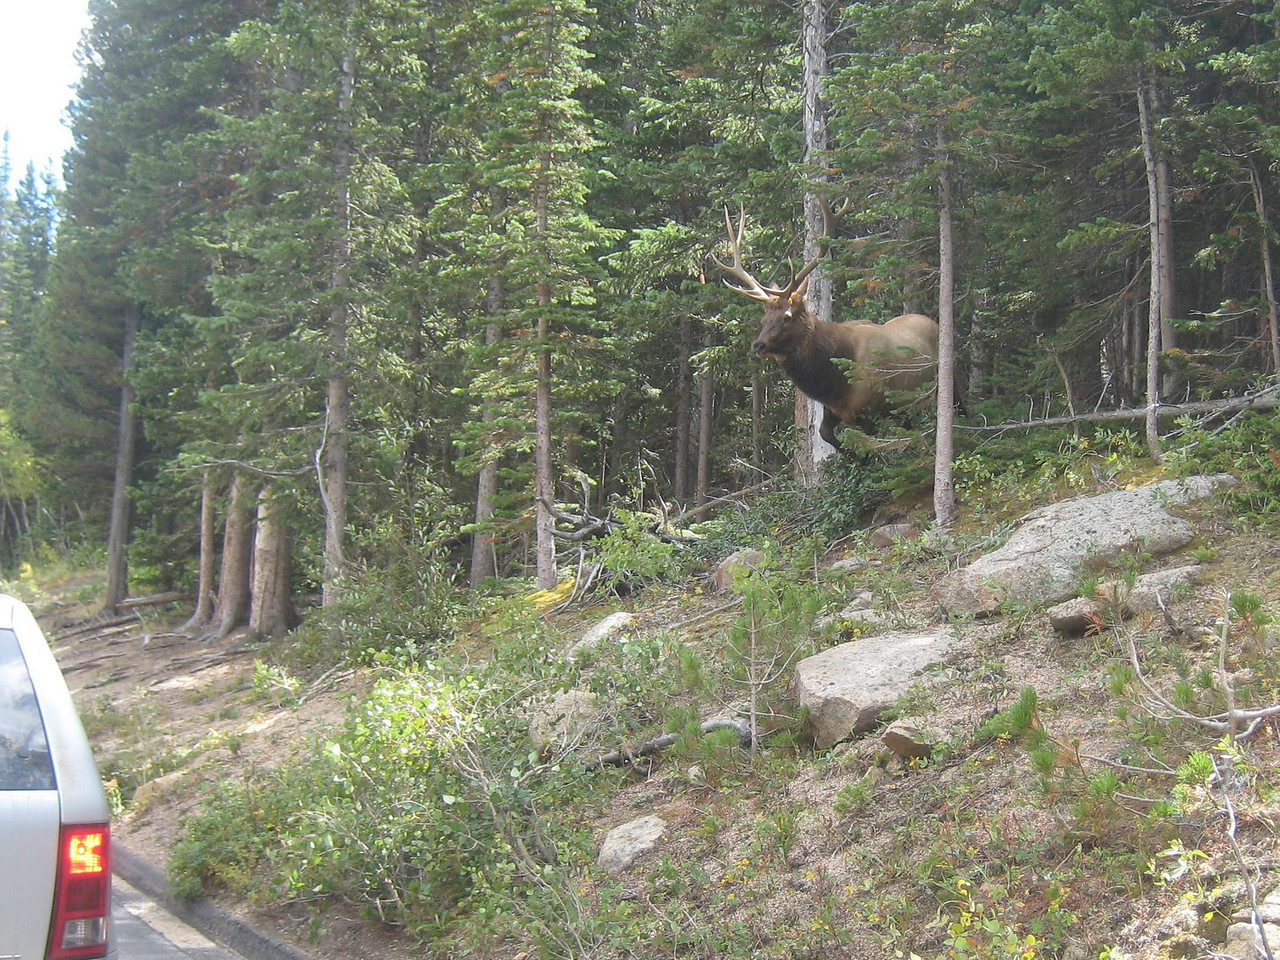 Returning from Winter Park, we head north to Estes Park.  On the east side of the park, the traffic comes to a stop.  It's clear why.  It's nearing rutting season, and I'm a bit nervous as this guy approaches the motorcycle and gives us a good look.